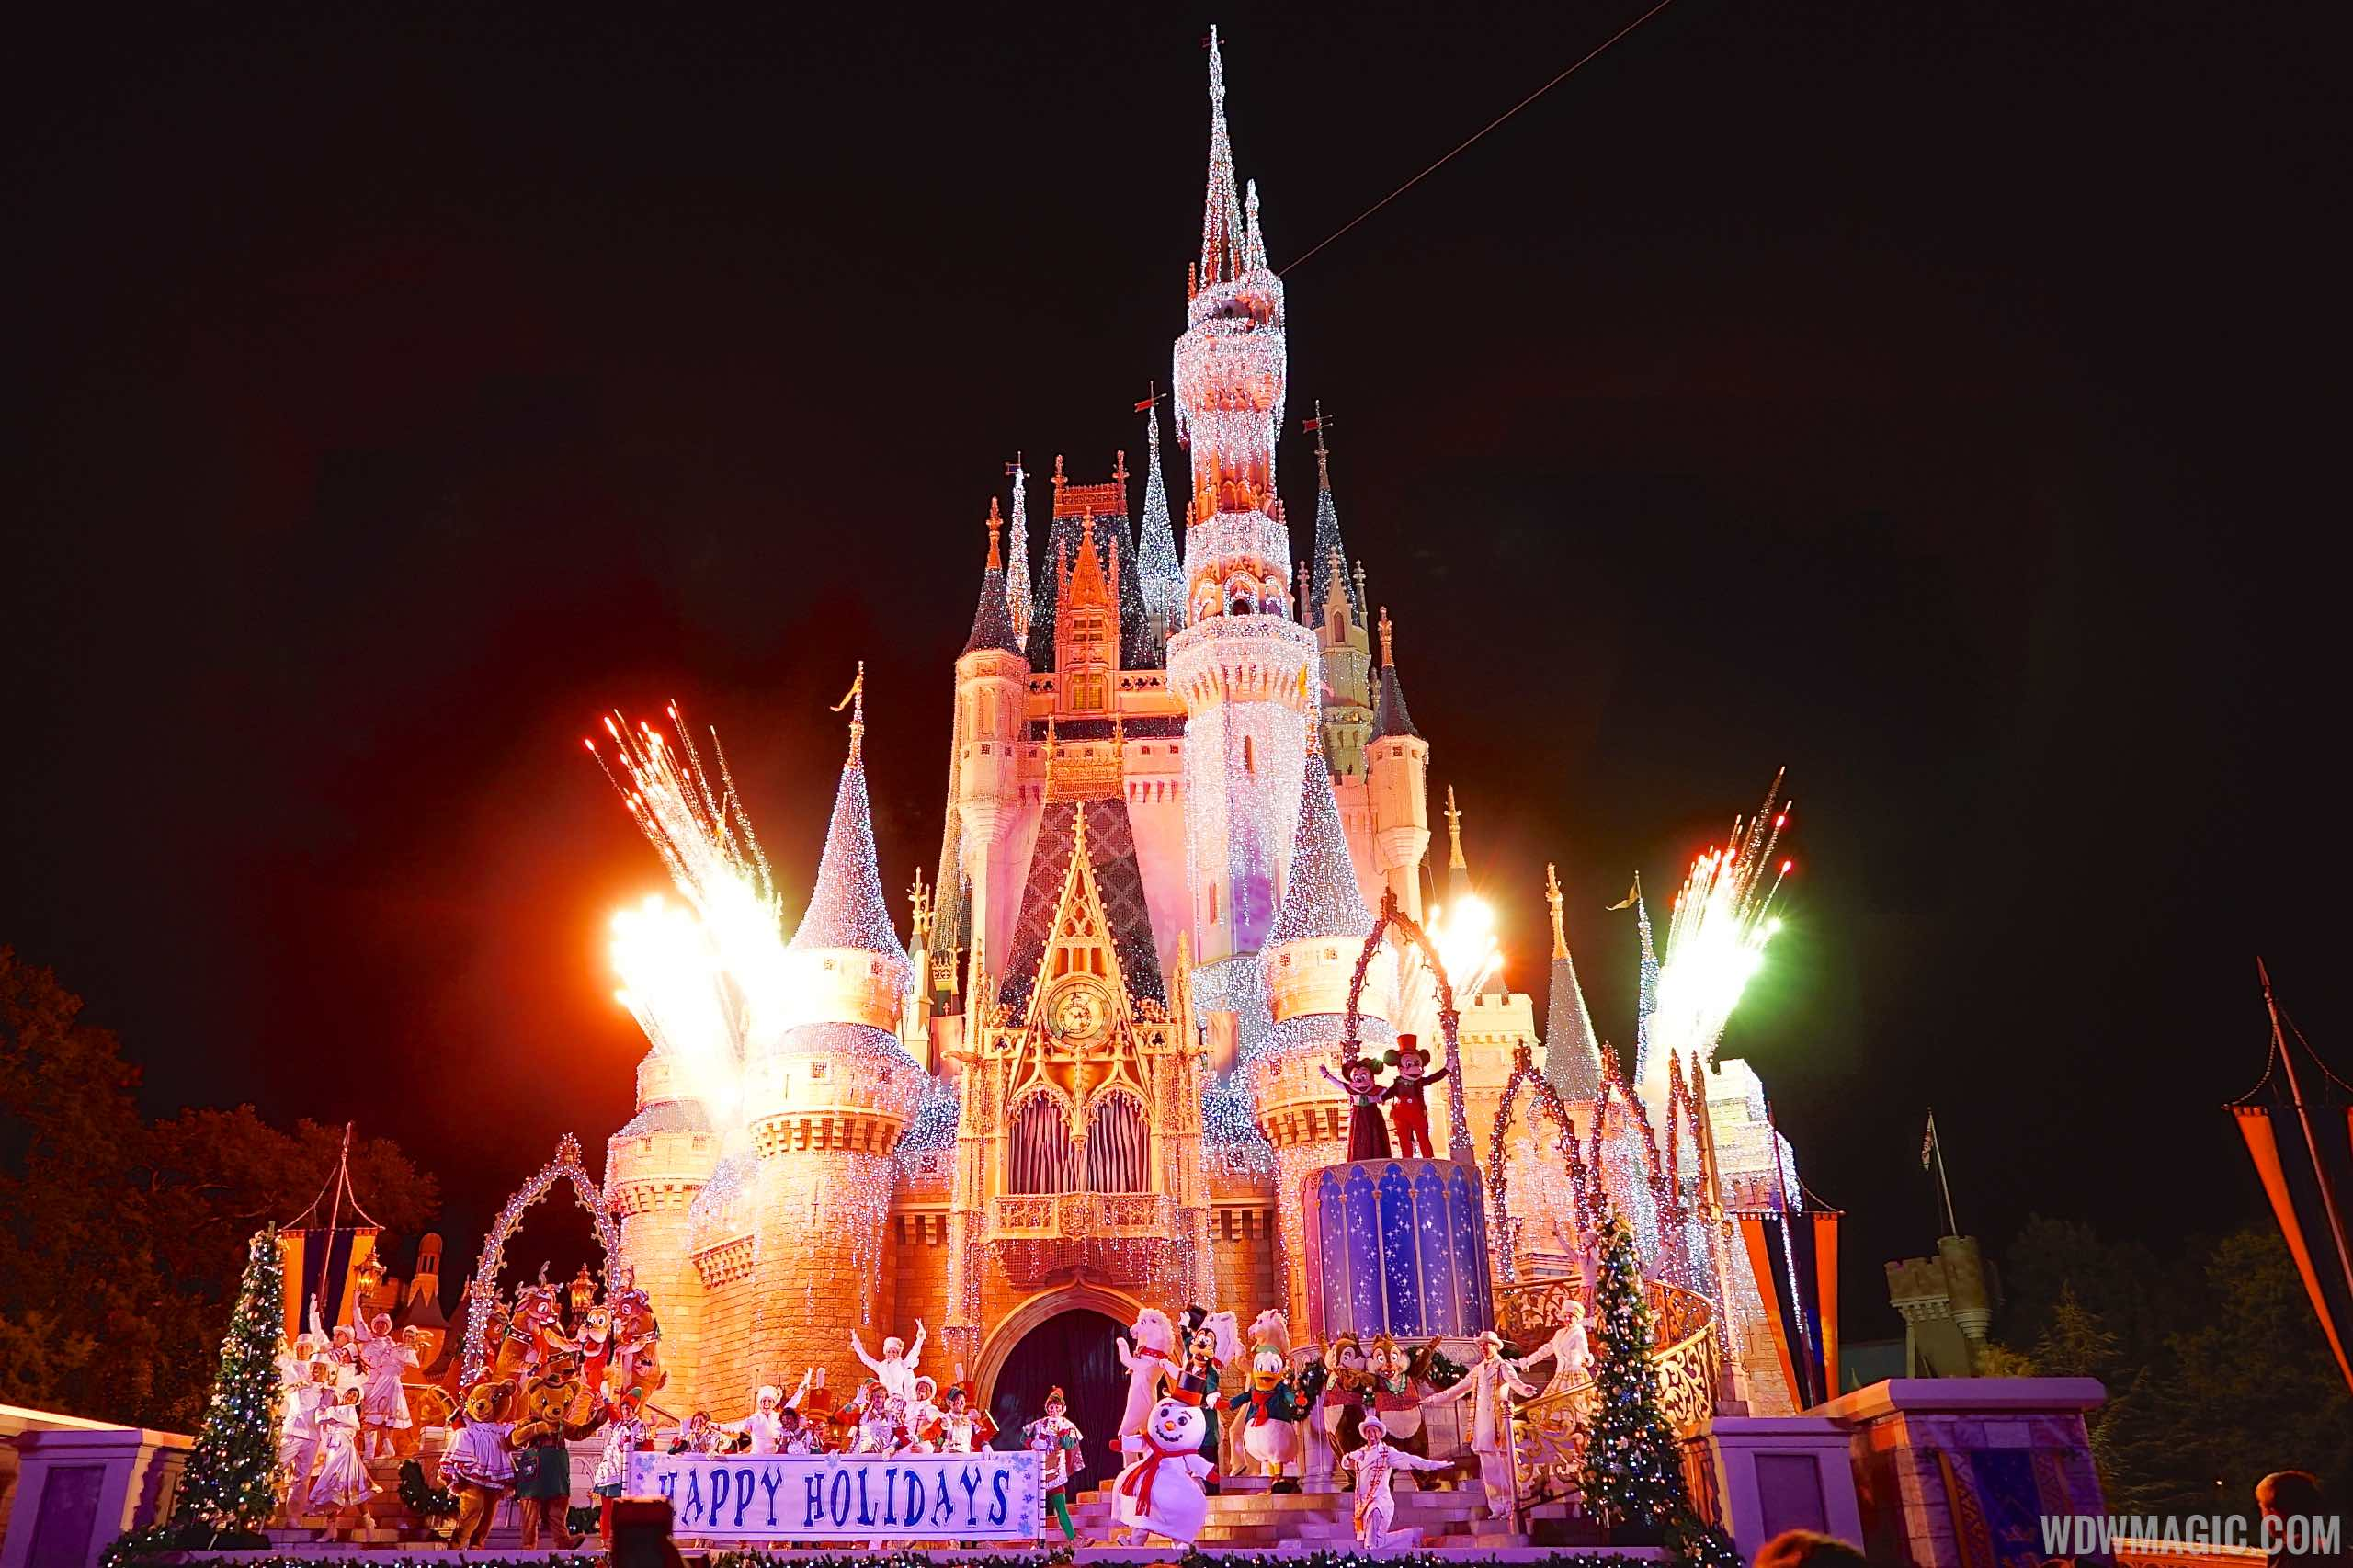 2018 Mickey's Very Merry Christmas Party pricing details